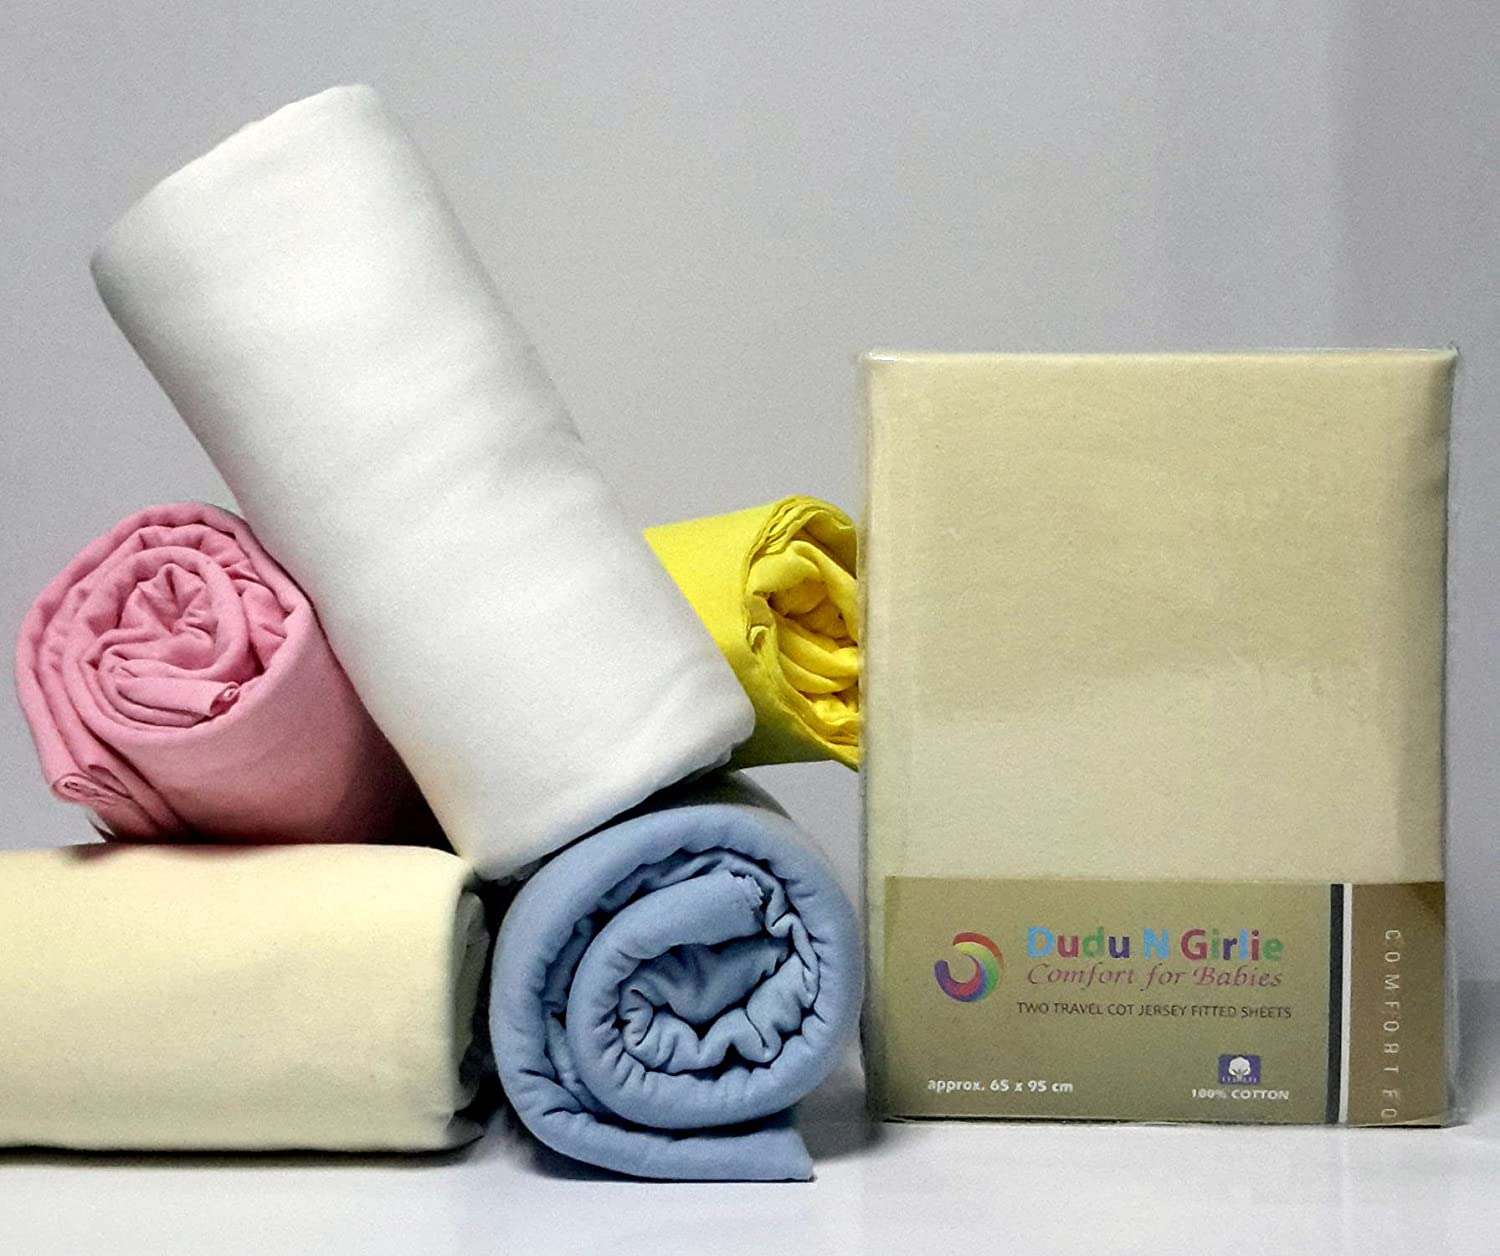 Dudu N Girlie Thick Cotton Travel Cot Fitted Sheets, 65 cm x 95 cm, 2-Piece, Cream Dudu N Girlie Limited B01G5N8WQ4